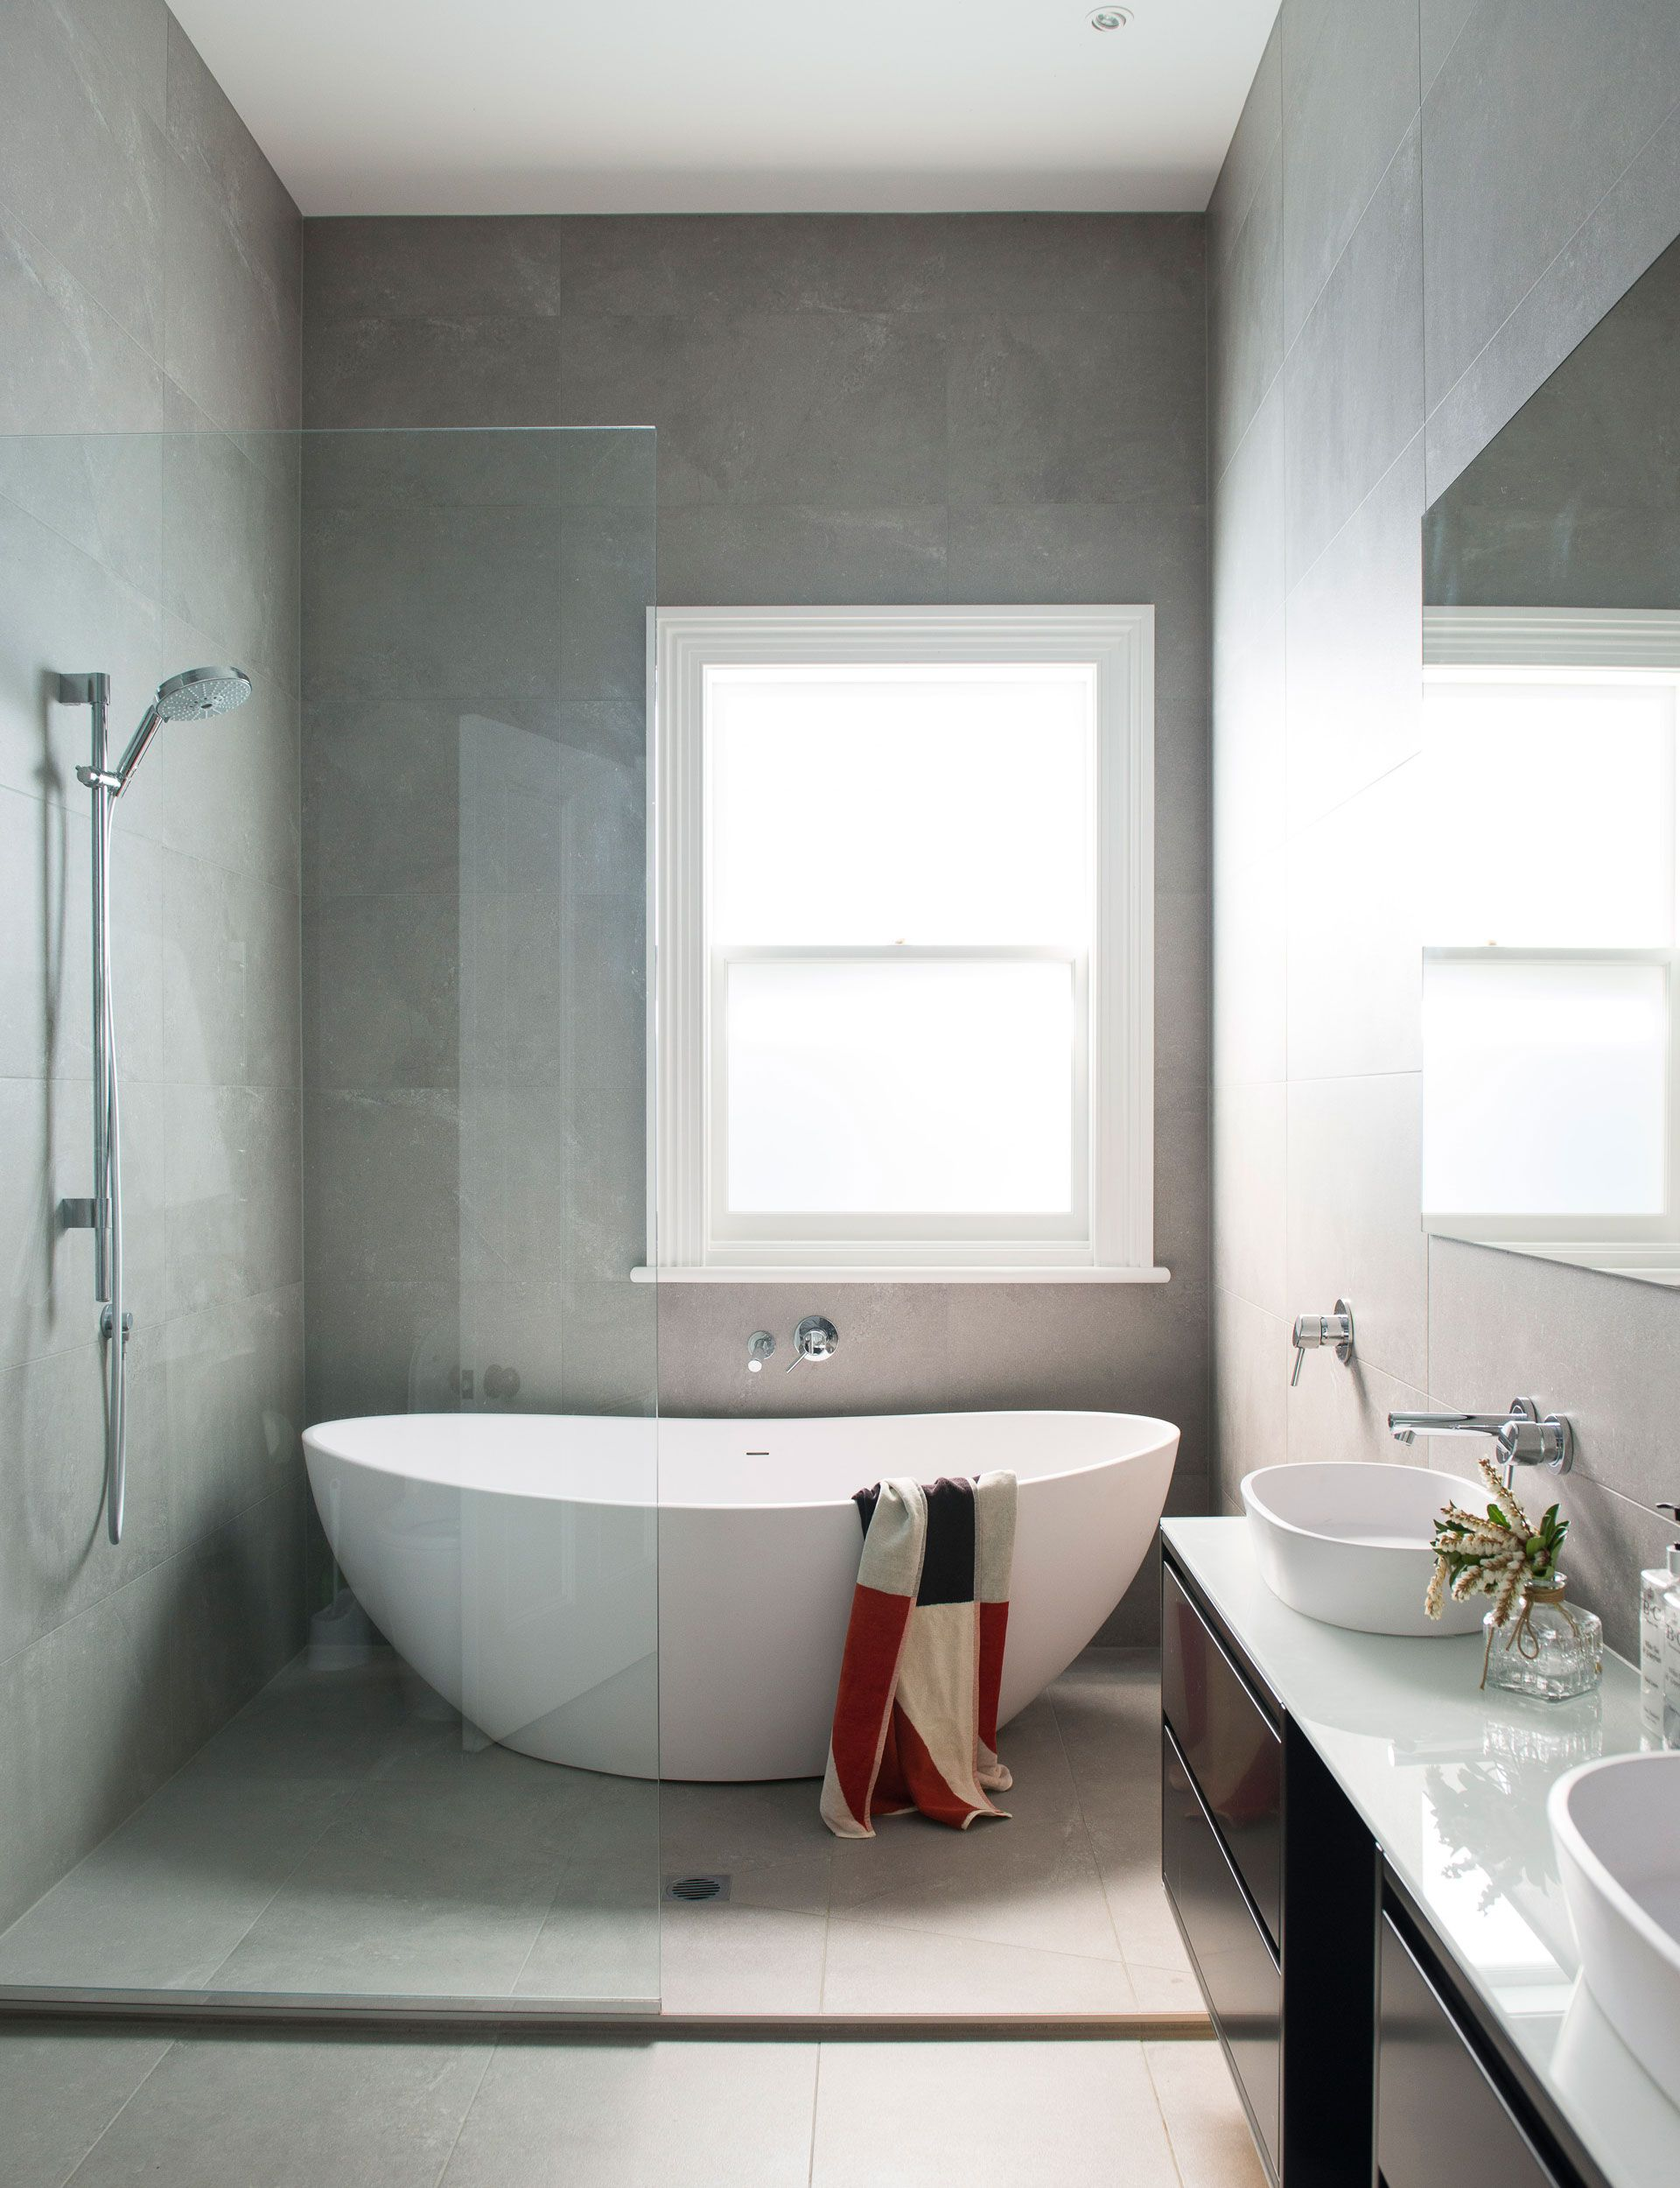 11 of our favourite bathroom designs from the archives   Bathroom ...